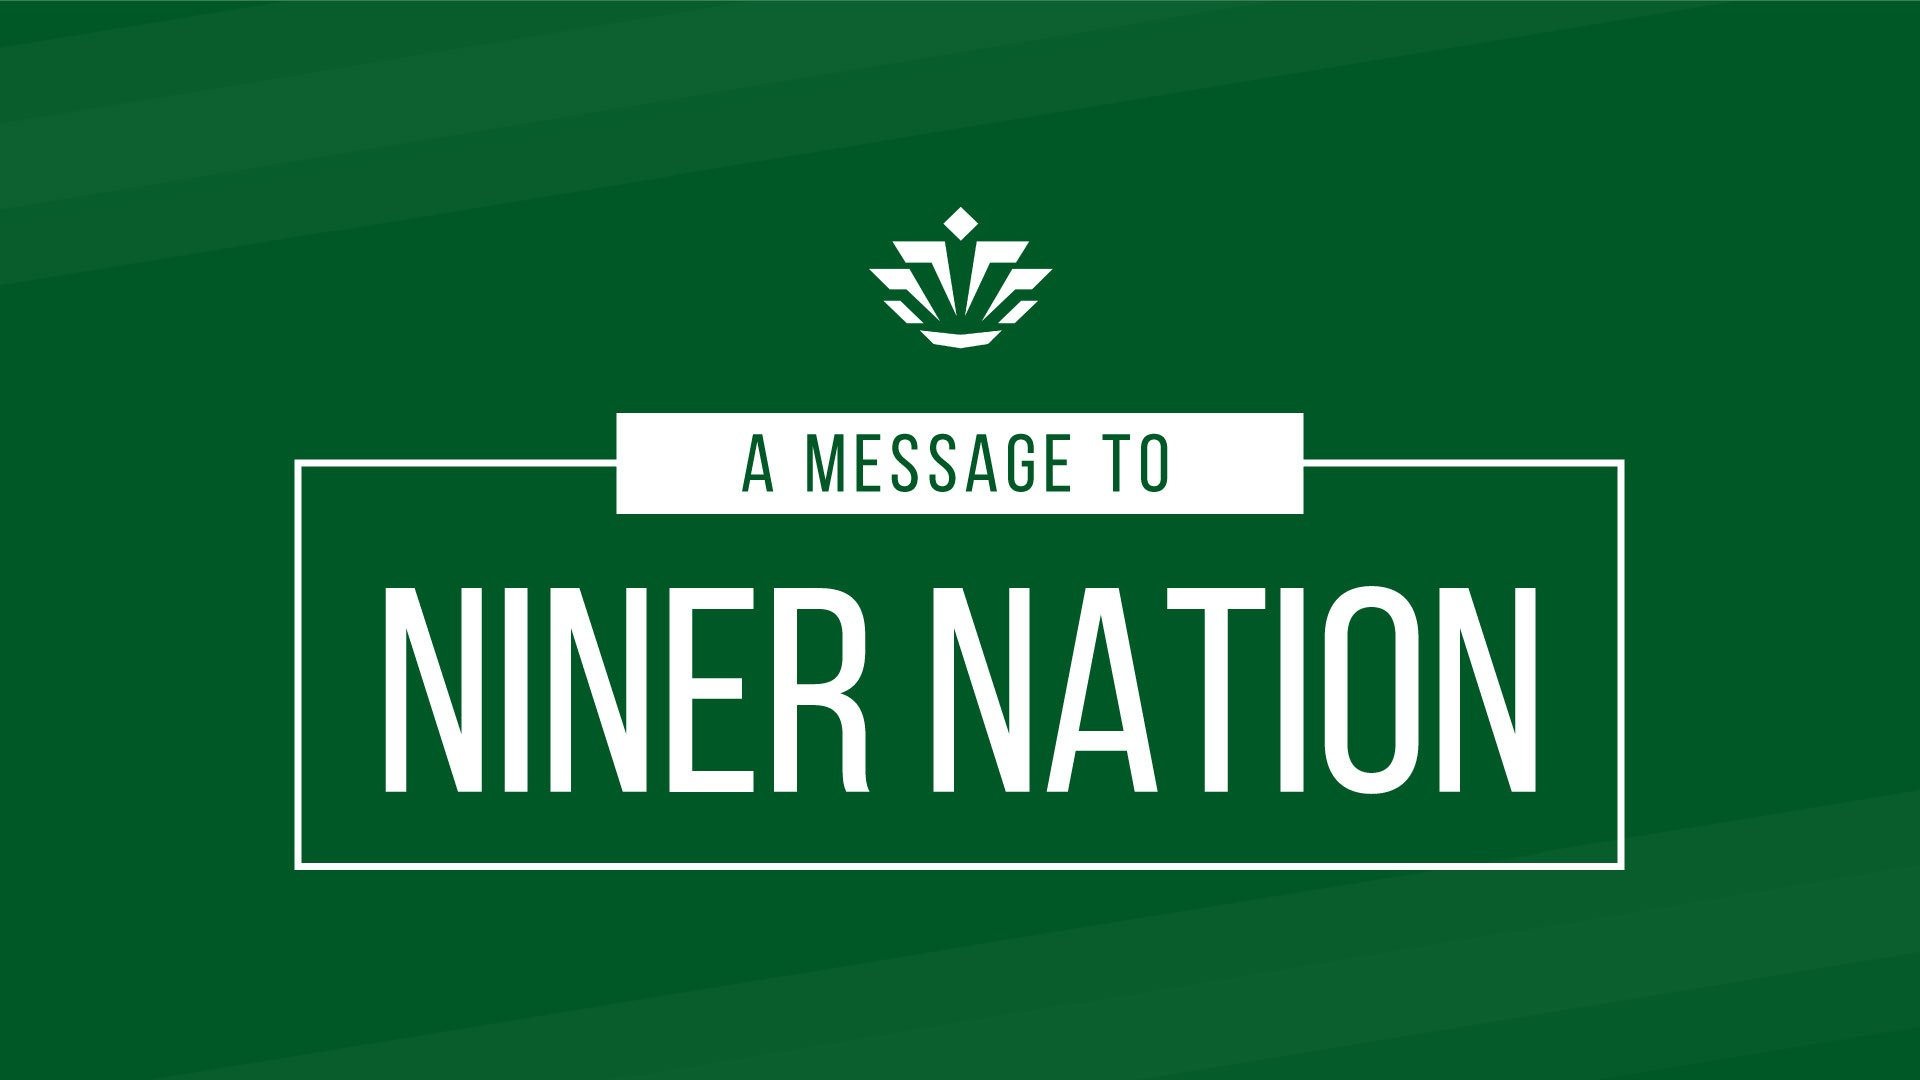 A Message to Niner Nation